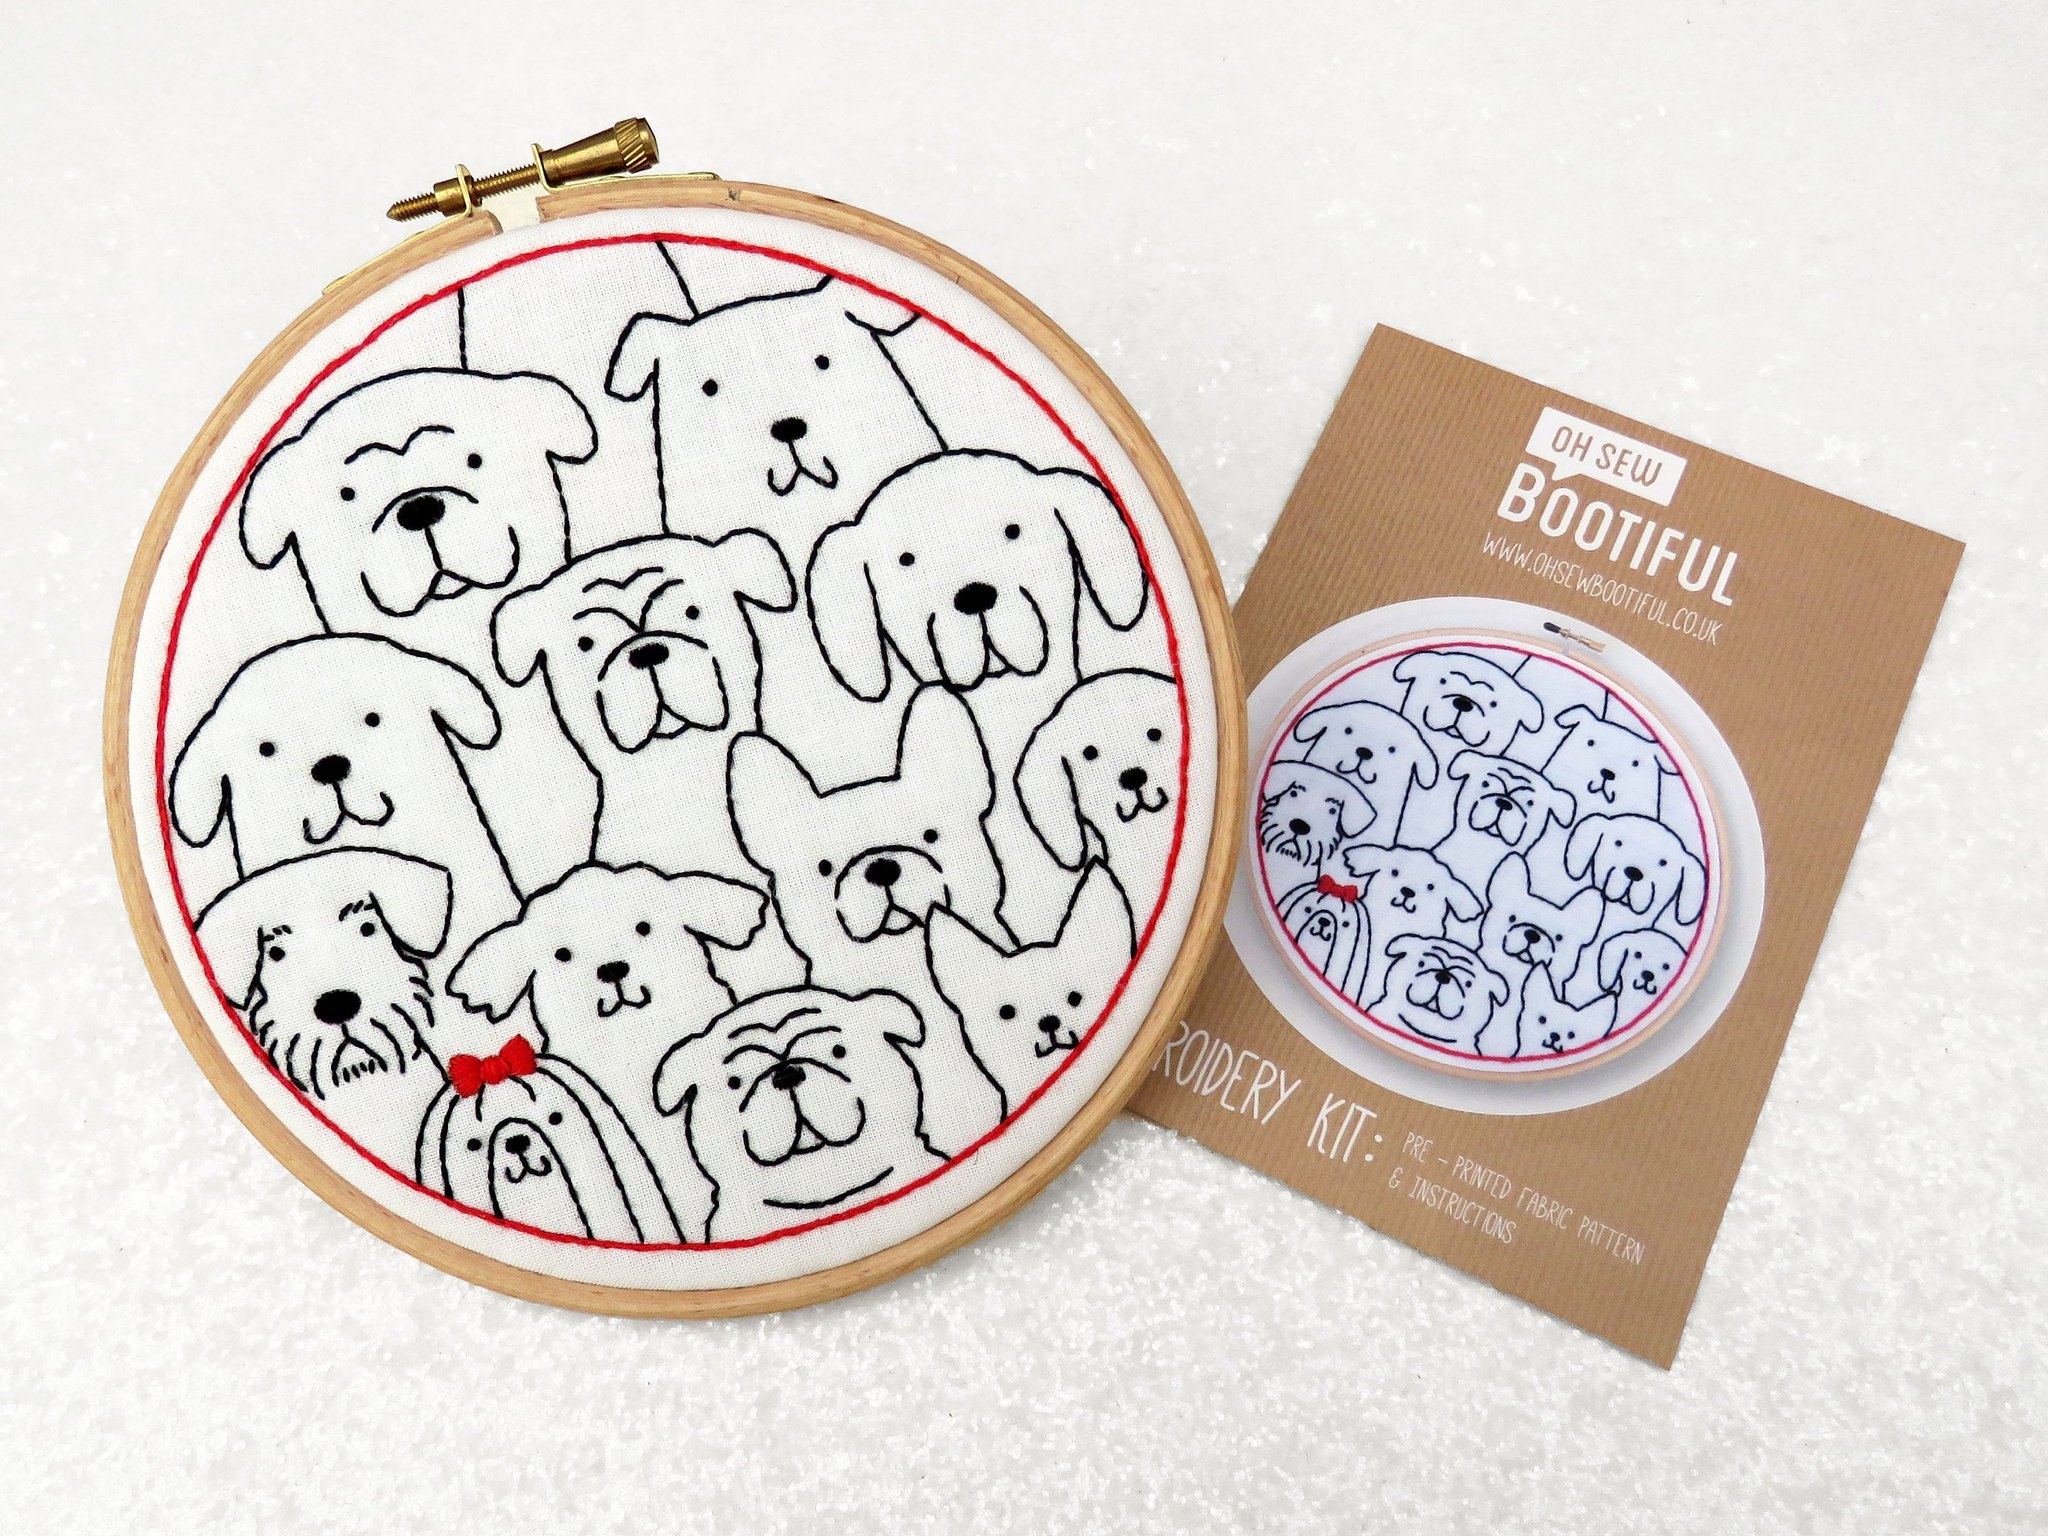 Oh Sew Bootiful On Twitter Dogs Hand Embroidery Pattern, Dogs